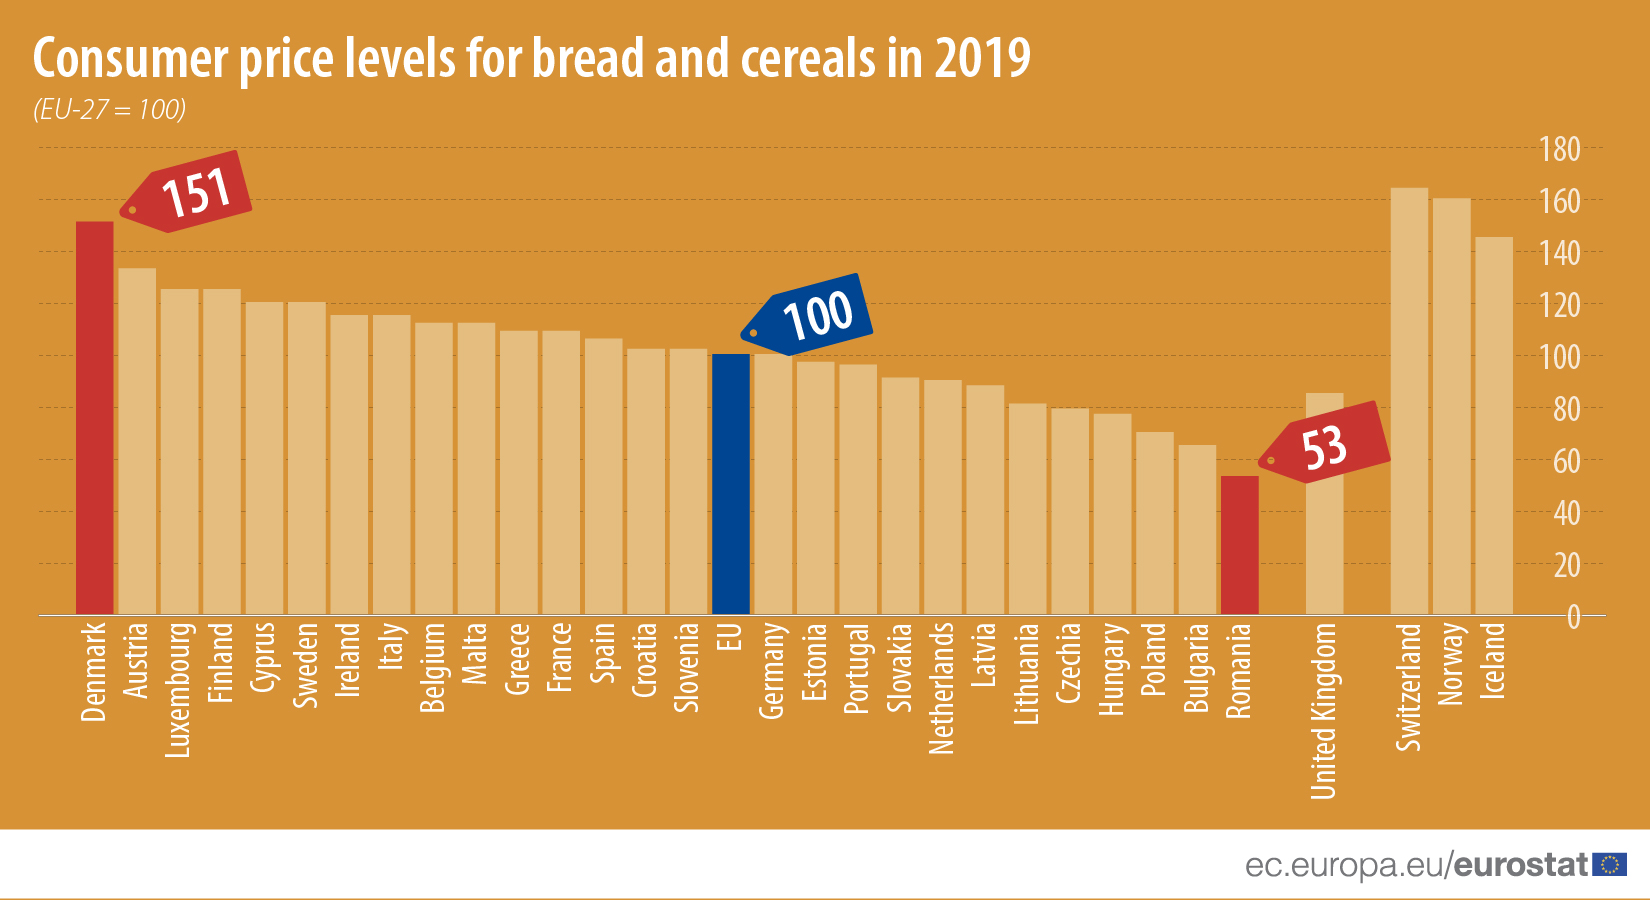 Consumer price levels for bread and cereals in 2019